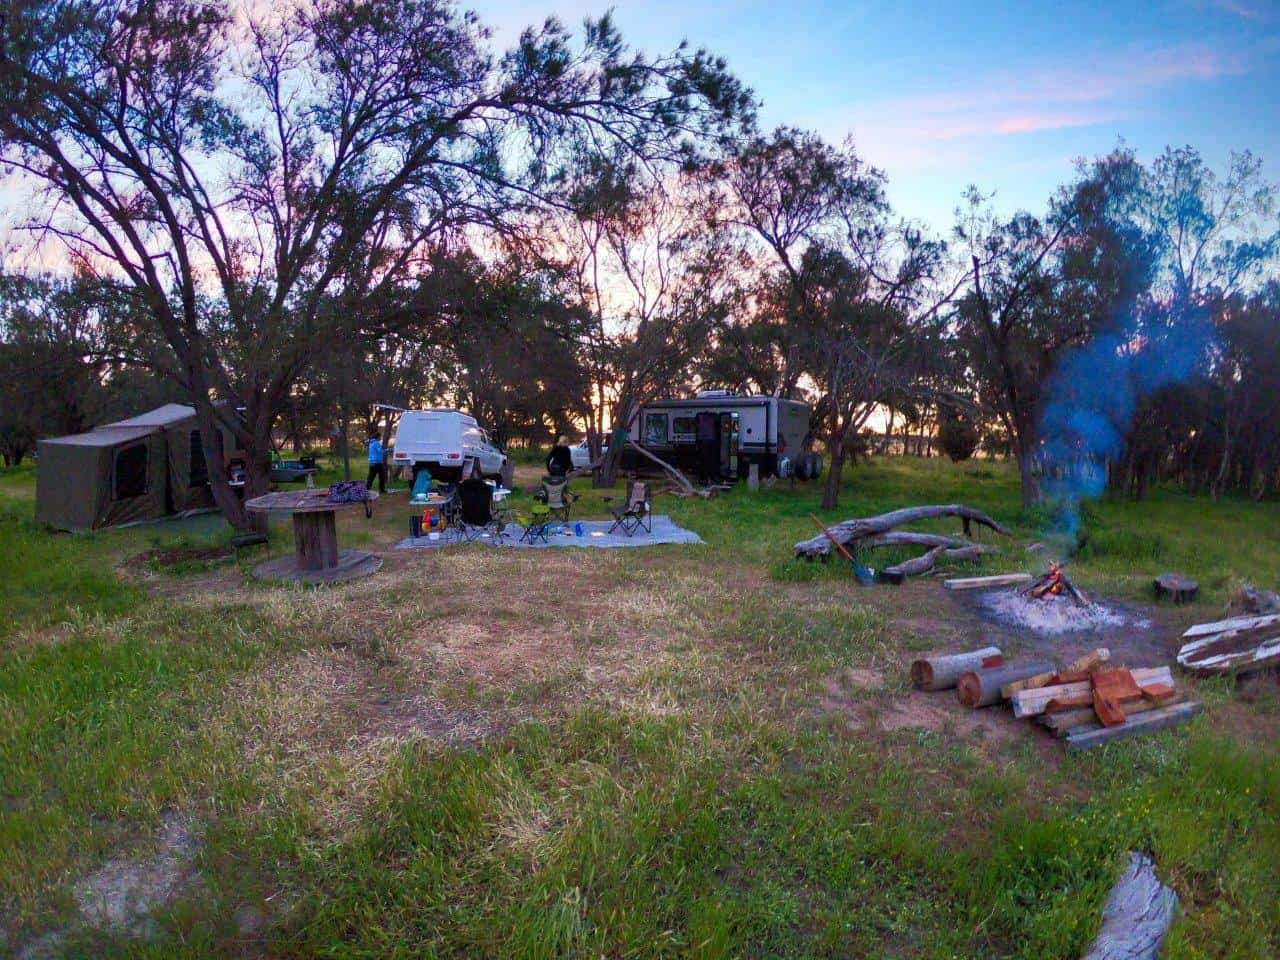 Camping at Trapwell Farm